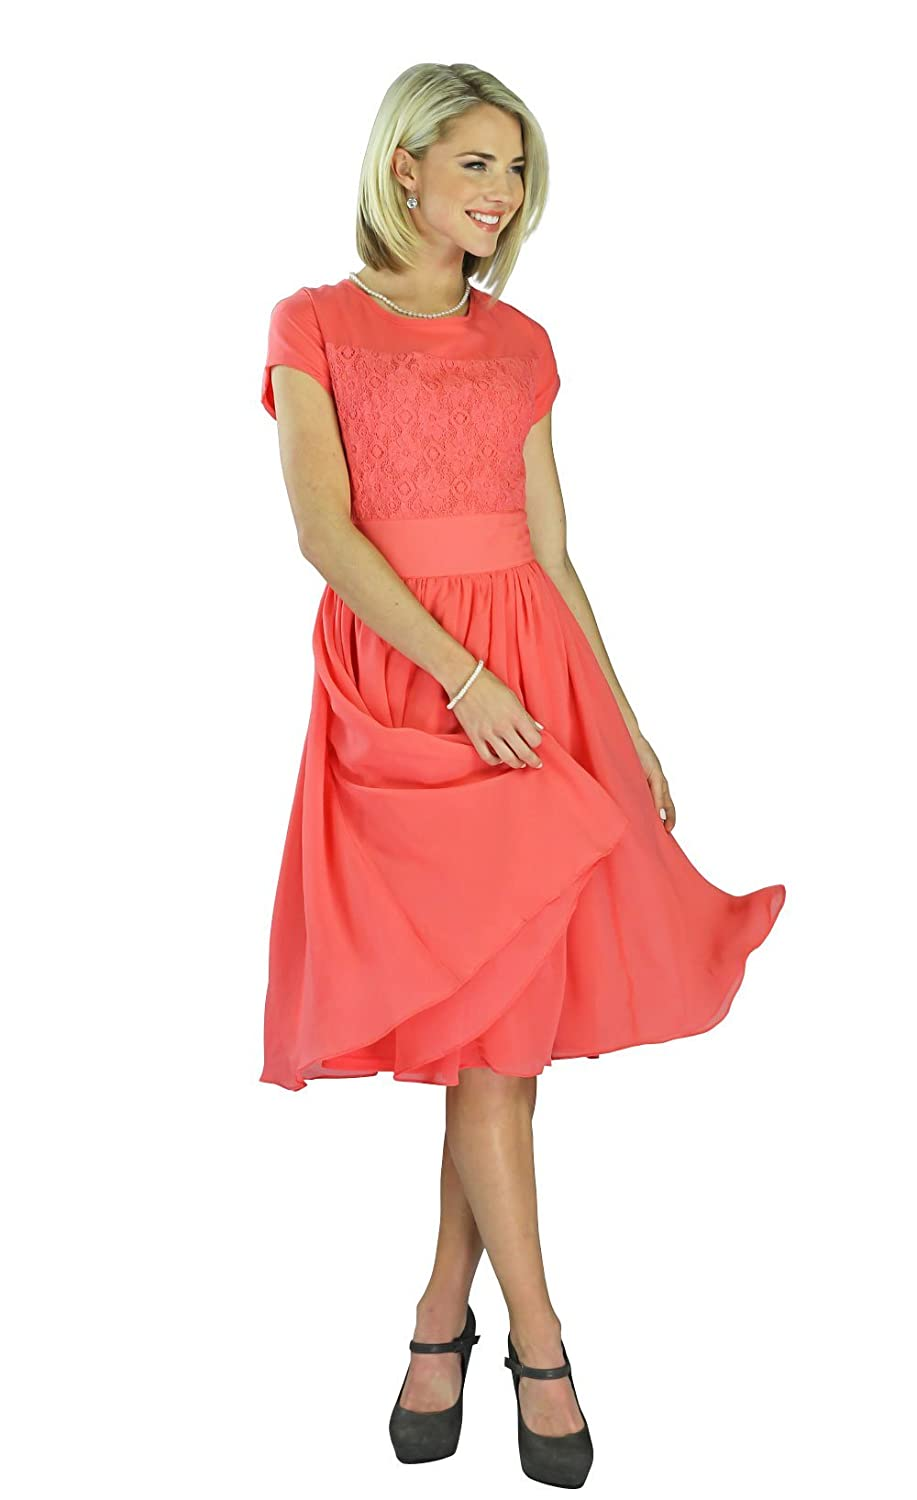 527e577aa25b Beautiful Modest Semi-Formal Dress with lace bodice & chiffon skirt. Modest  knee-length dress with short sleeves; fully lined so no need for a slip